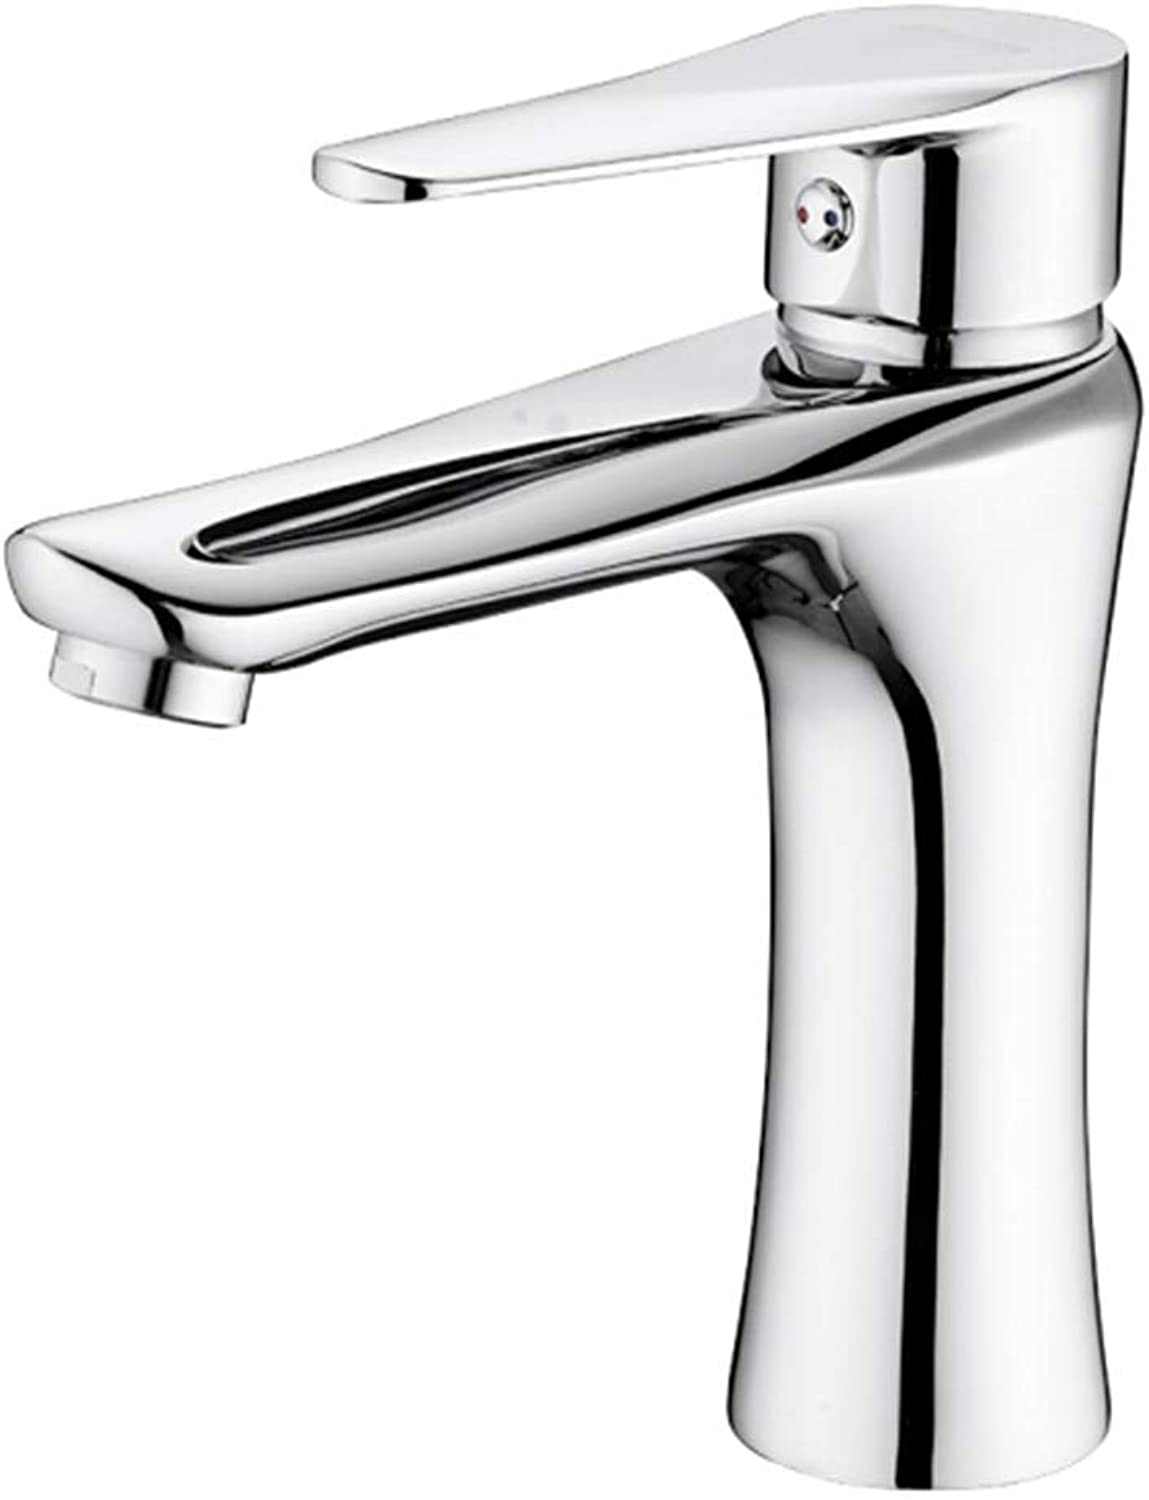 Kitchen Faucet Tapstainless Steelkitchen Faucet Probathroom Basin Faucet Copper Hot and Cold Single Hole Faucet Toilet Sink Bathroom Cabinet Faucet